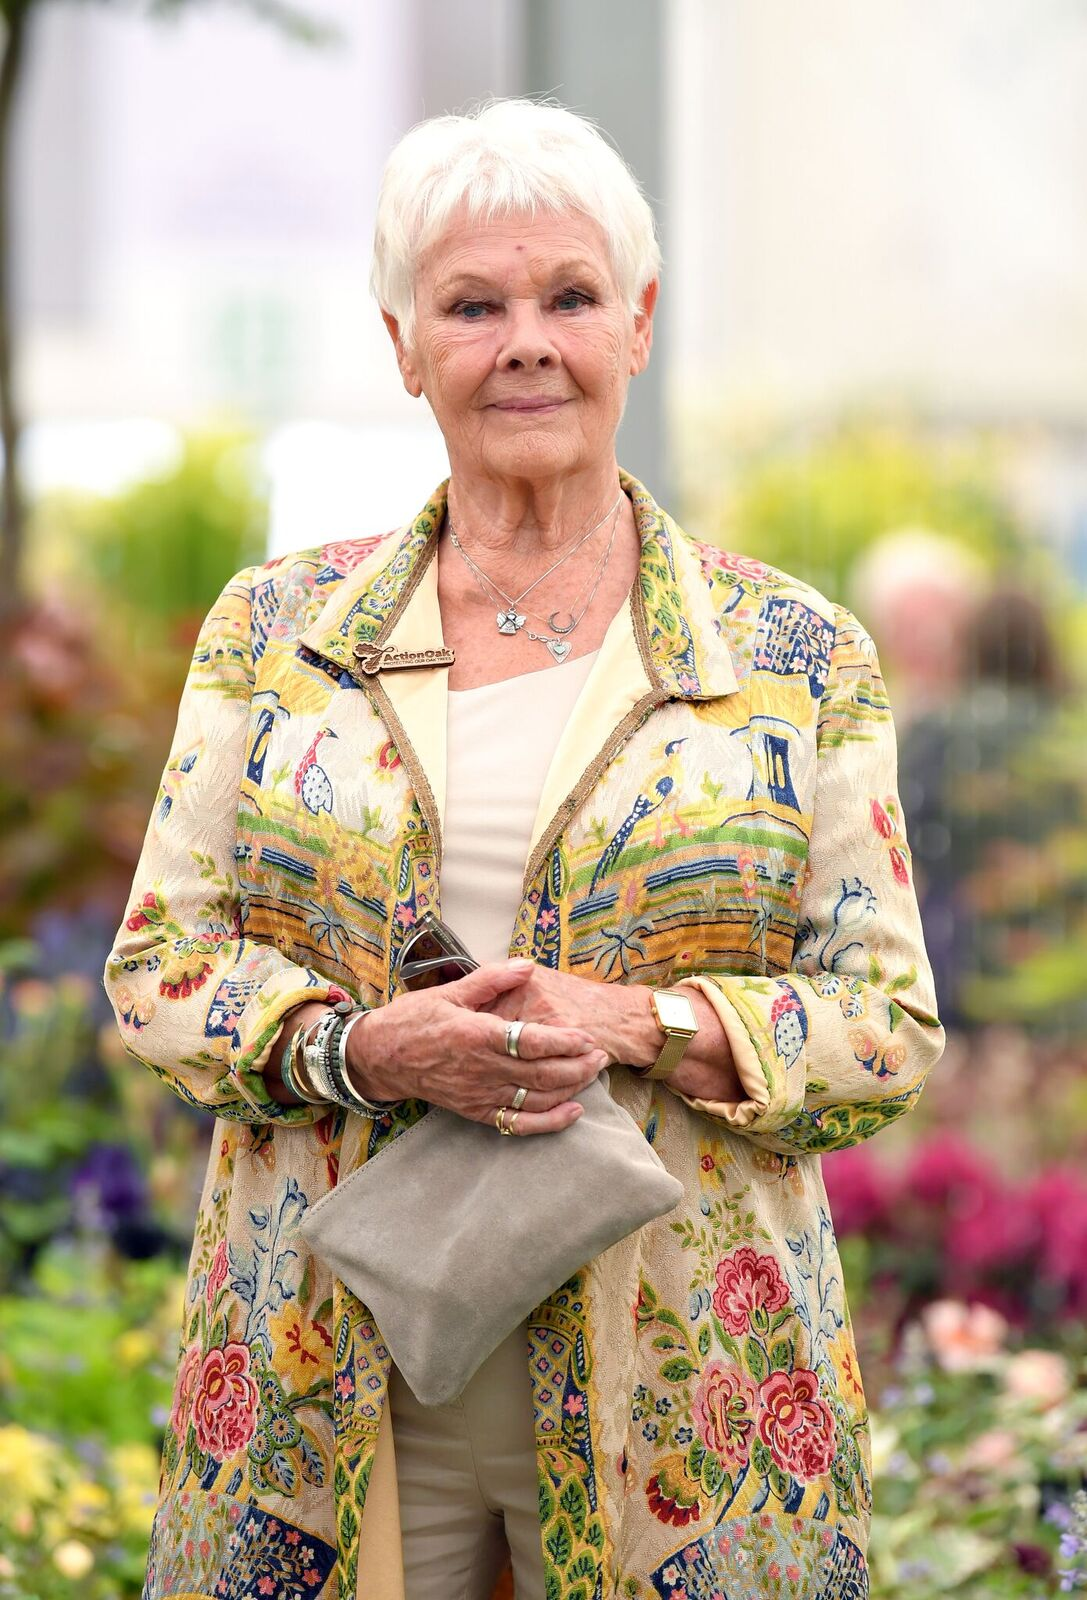 Dame Judy Dench attends the RHS Chelsea Flower Show on May 20, 2019 in London, England | Photo: Getty Images